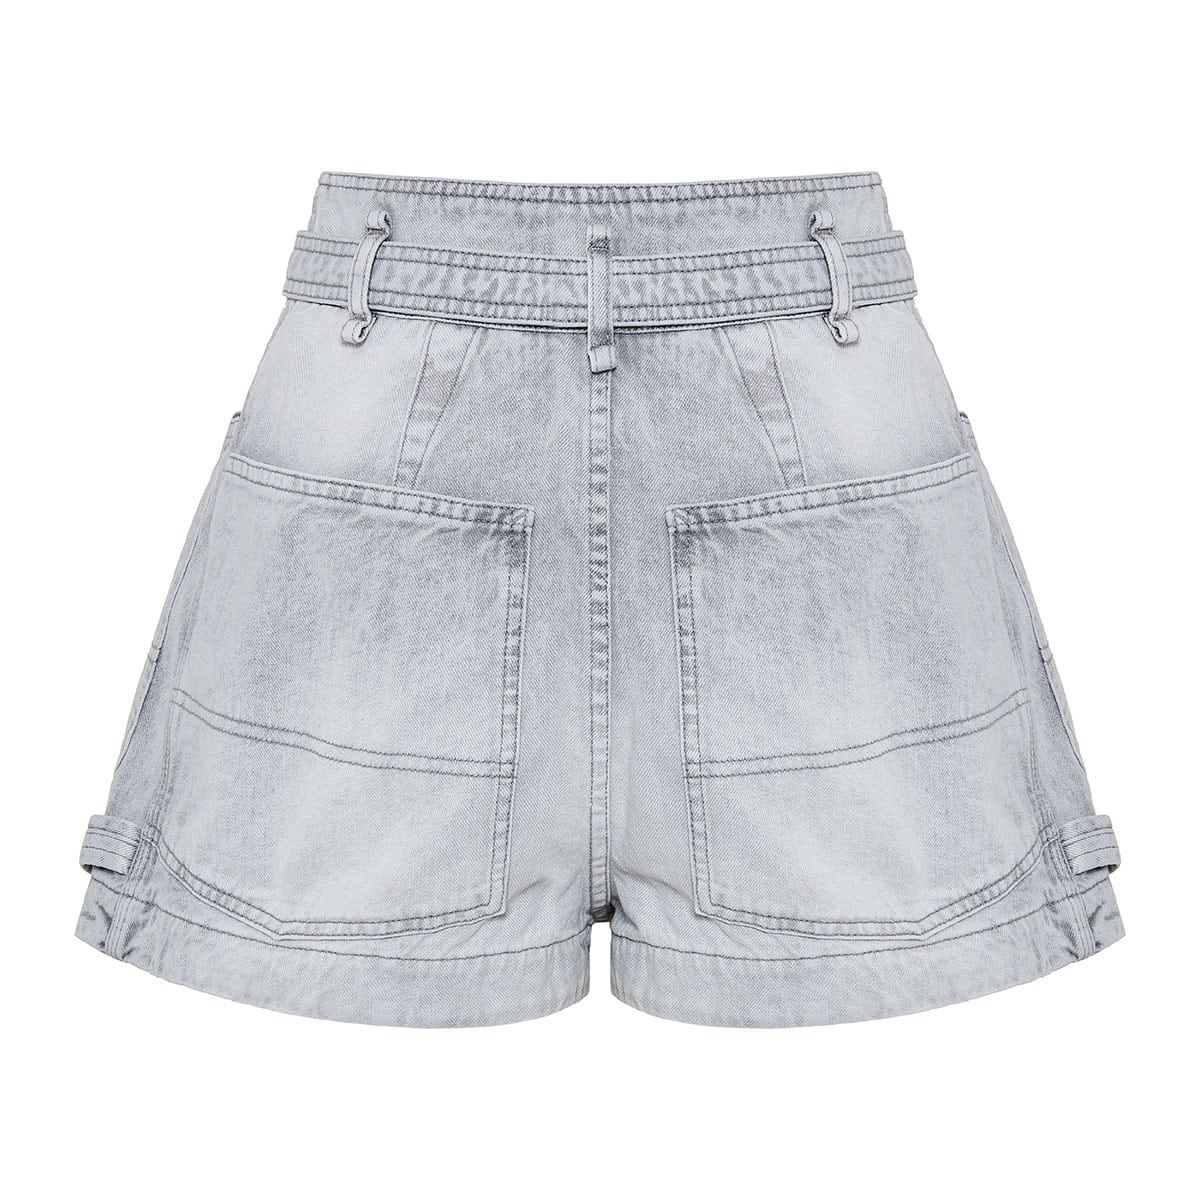 Kike high waist denim shorts